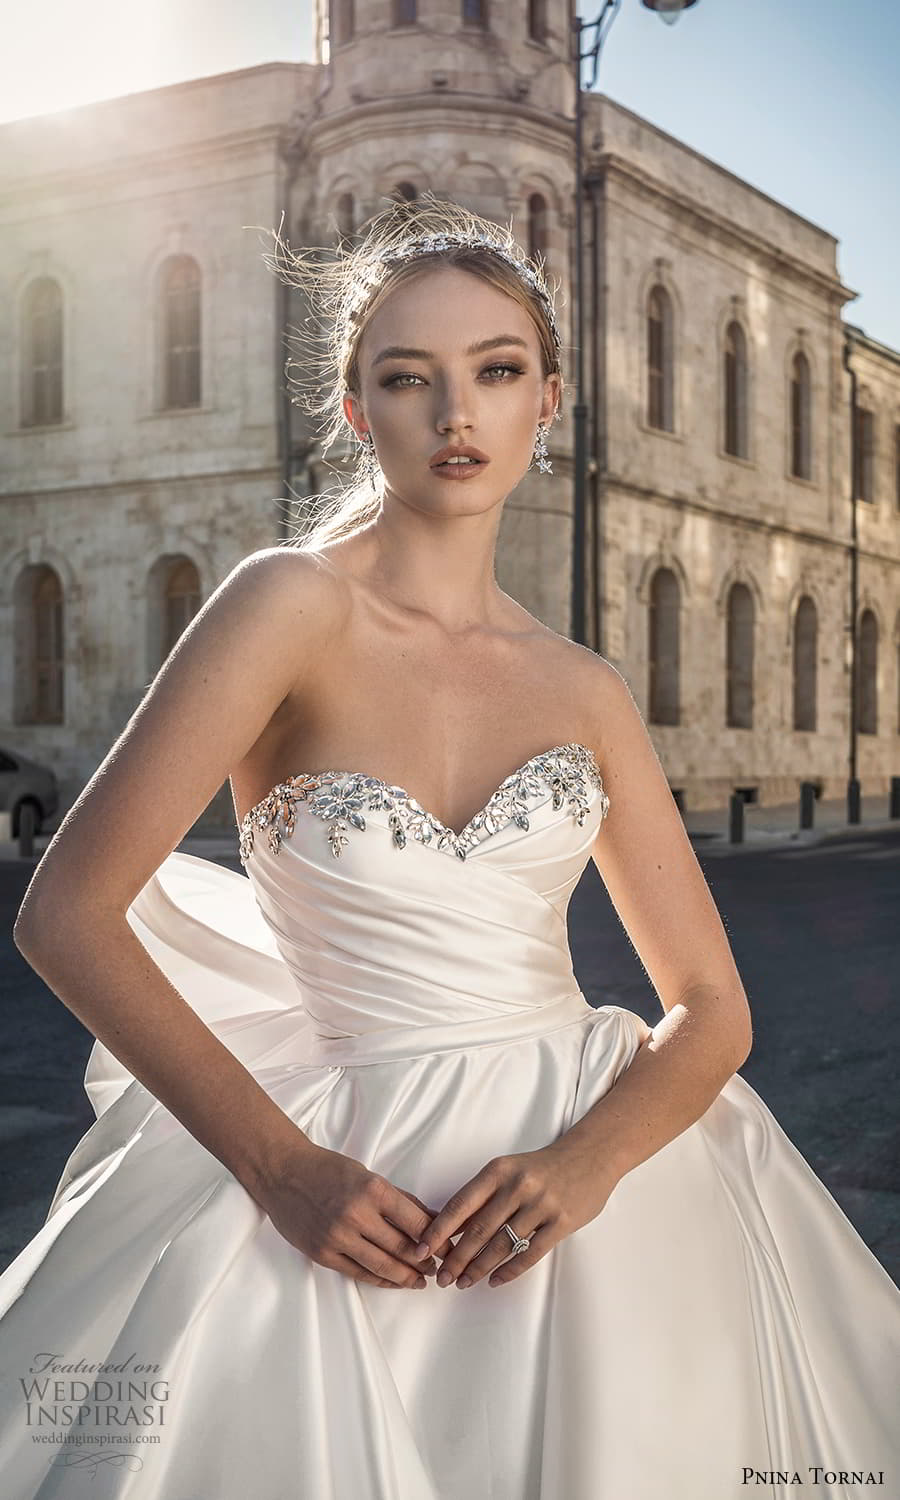 pnina tornai 2022 love bridal strapless embellished sweetheart neckline ruched bodice minimalist a line ball gown wedding dress chapel train bow back (3) zv